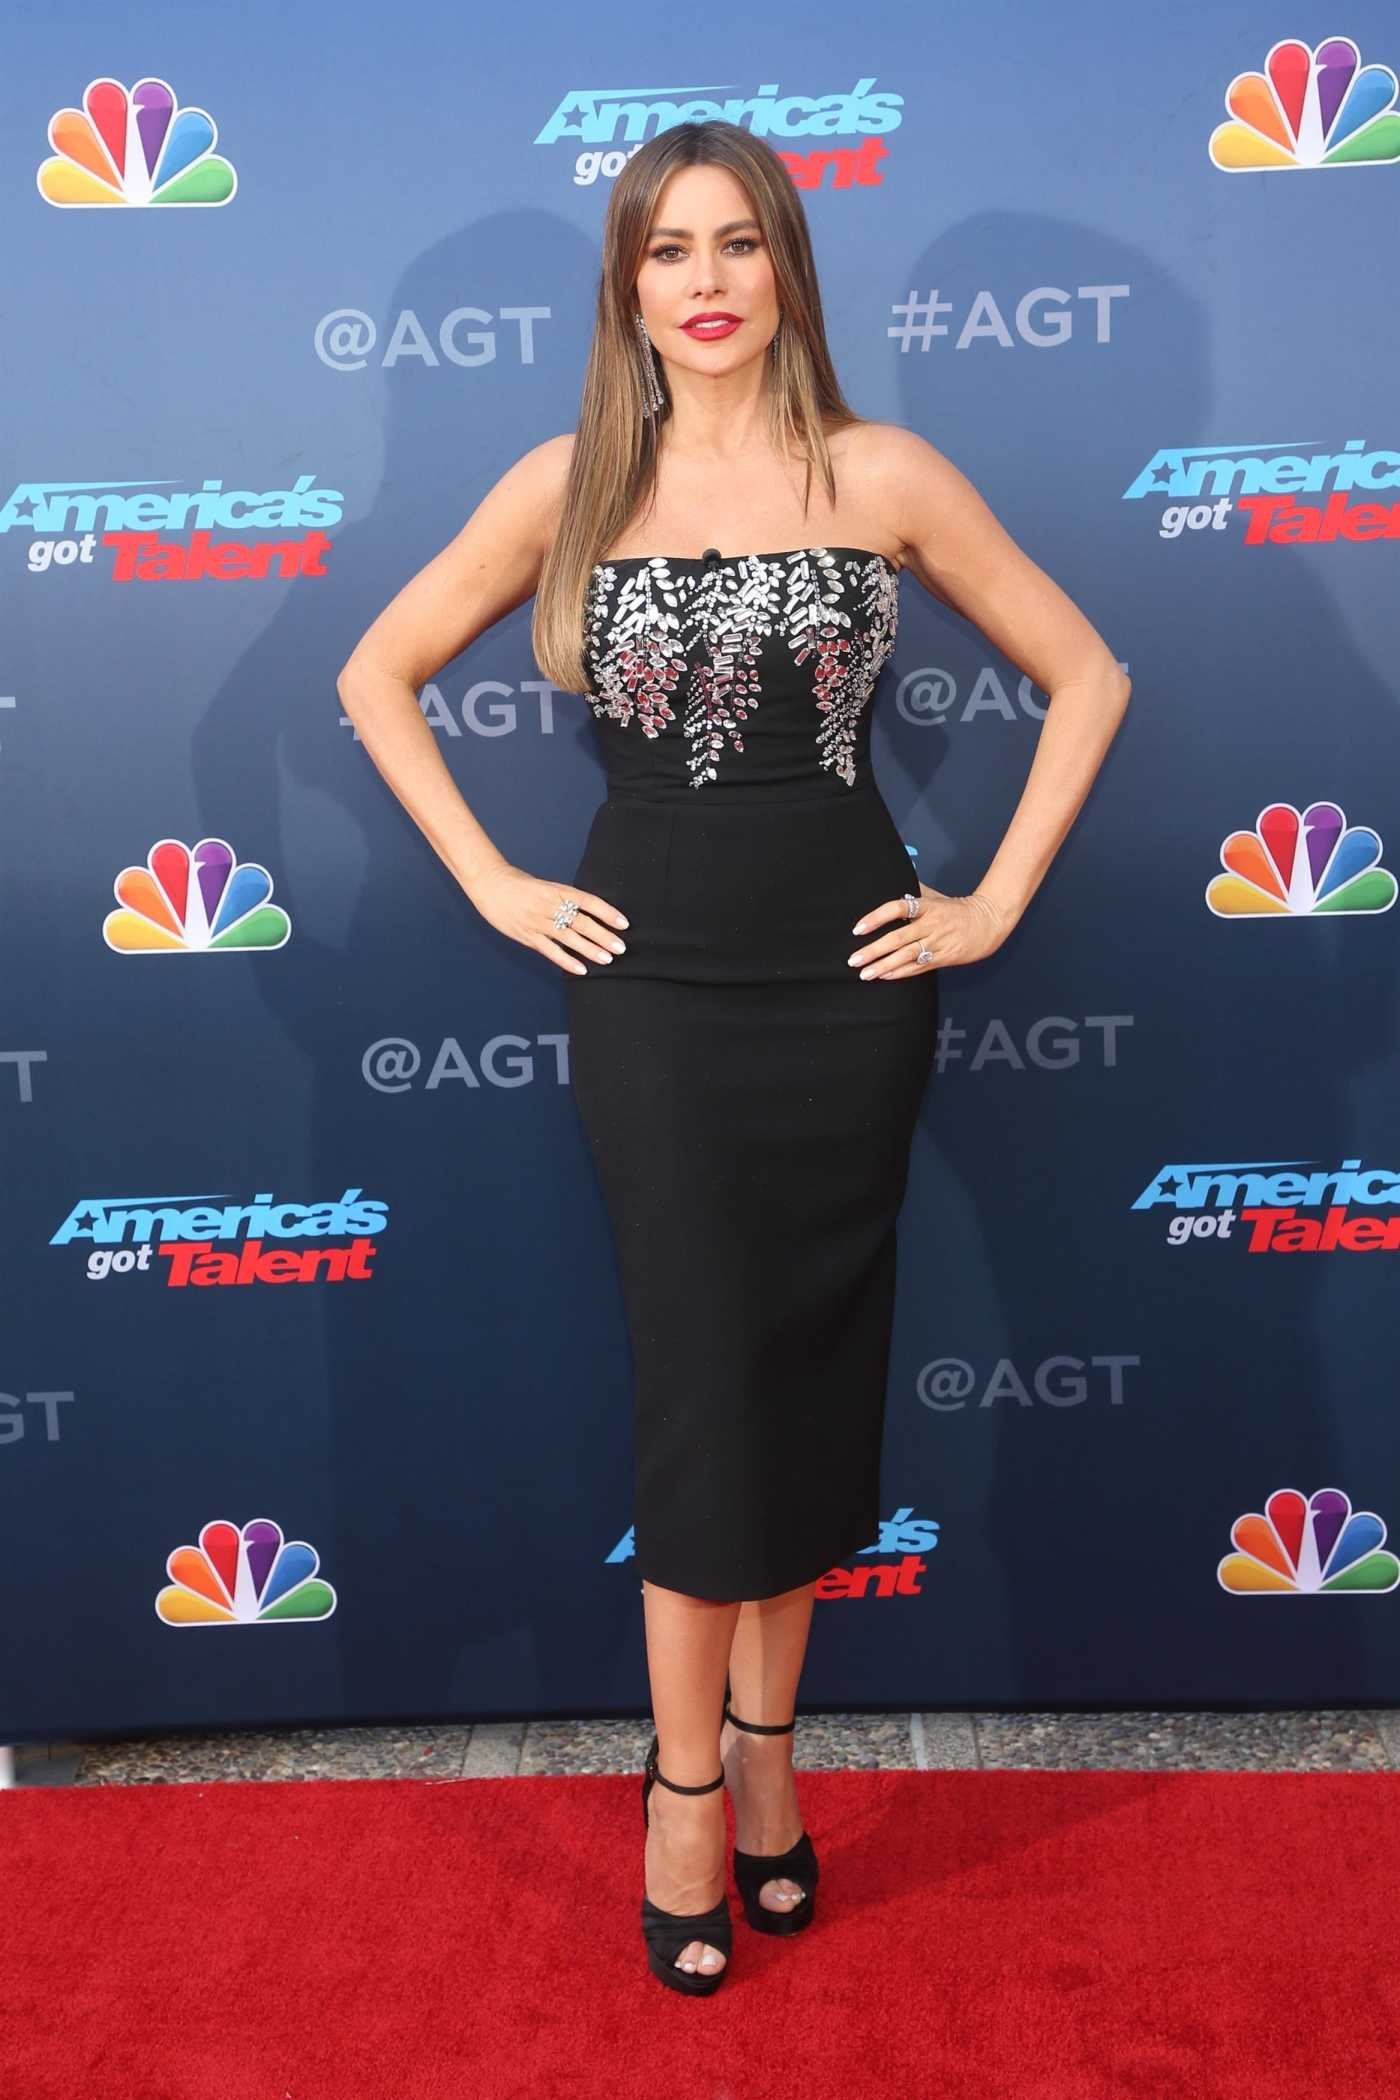 Sofia Vergara Attends the America's Got Talent Season 15 Kickoff at Pasadena Civic Auditorium in Pasadena 03/04/2020